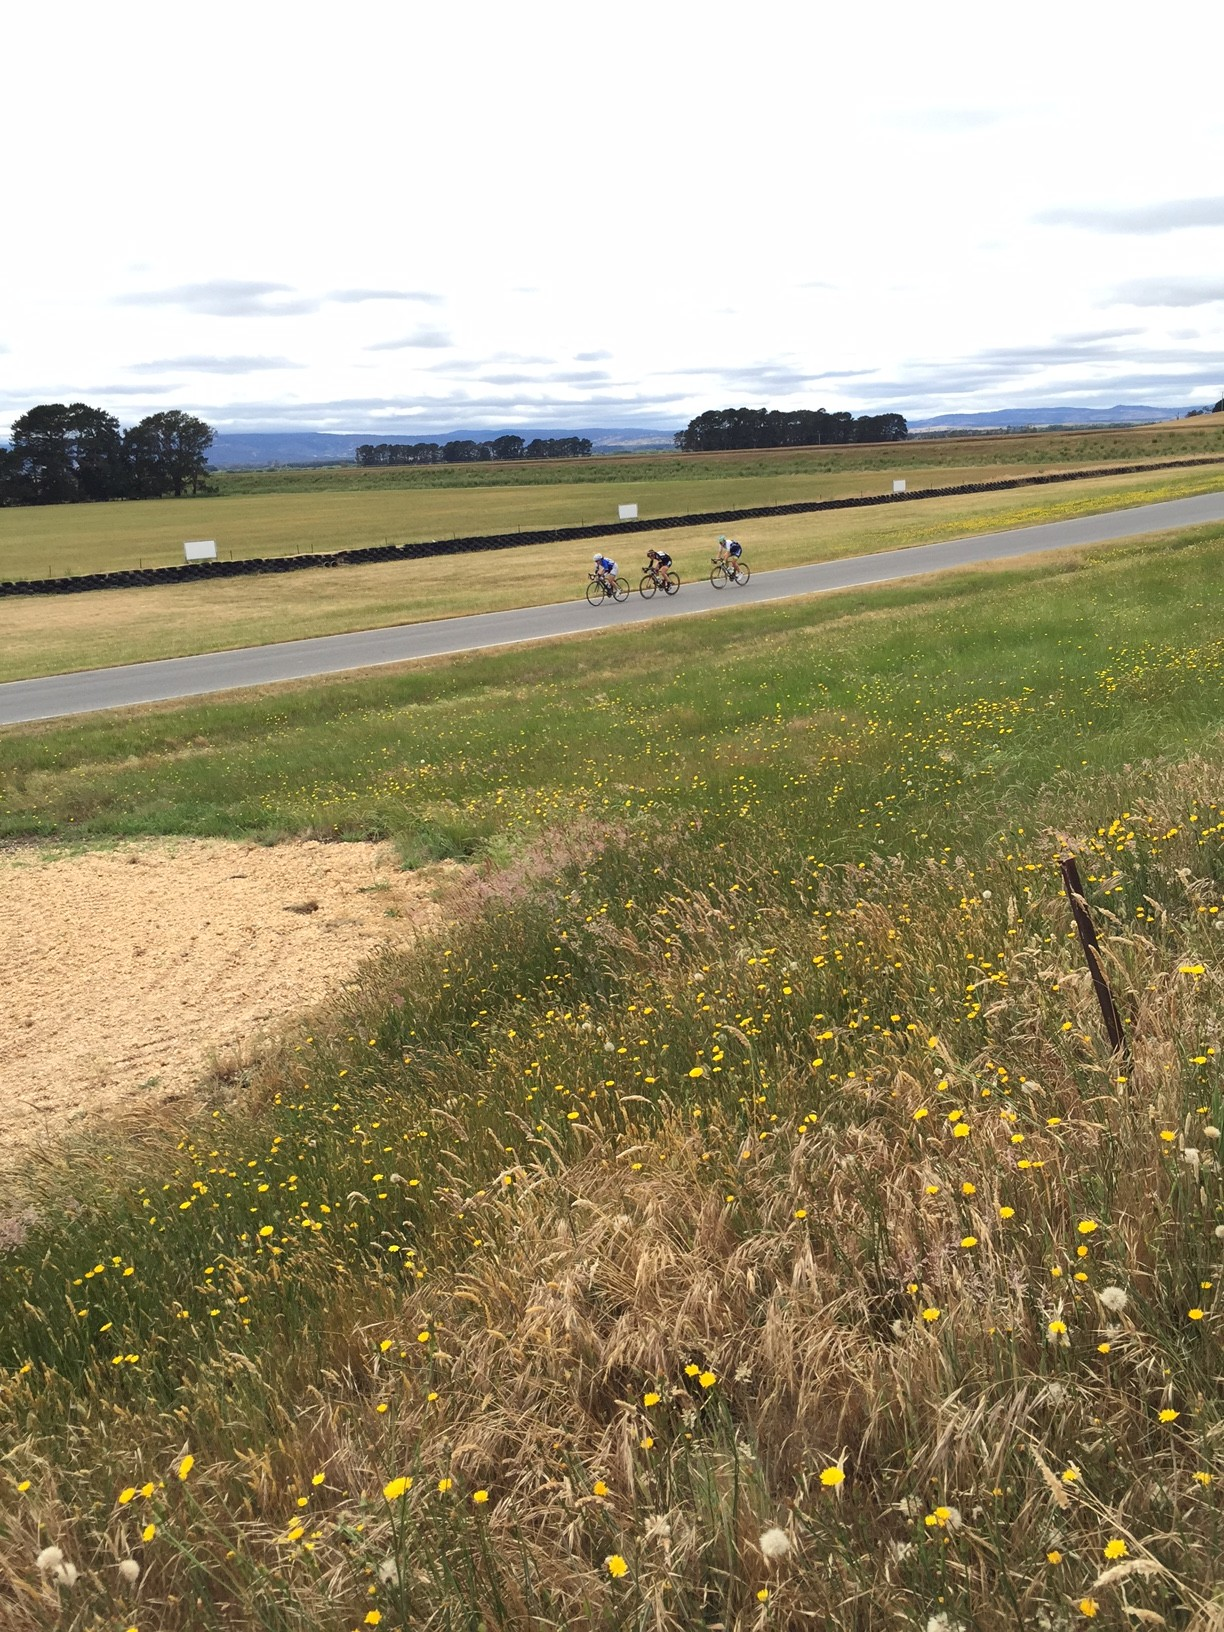 Chloe in the lead group at the Symmons Plains Raceway Kermesse.